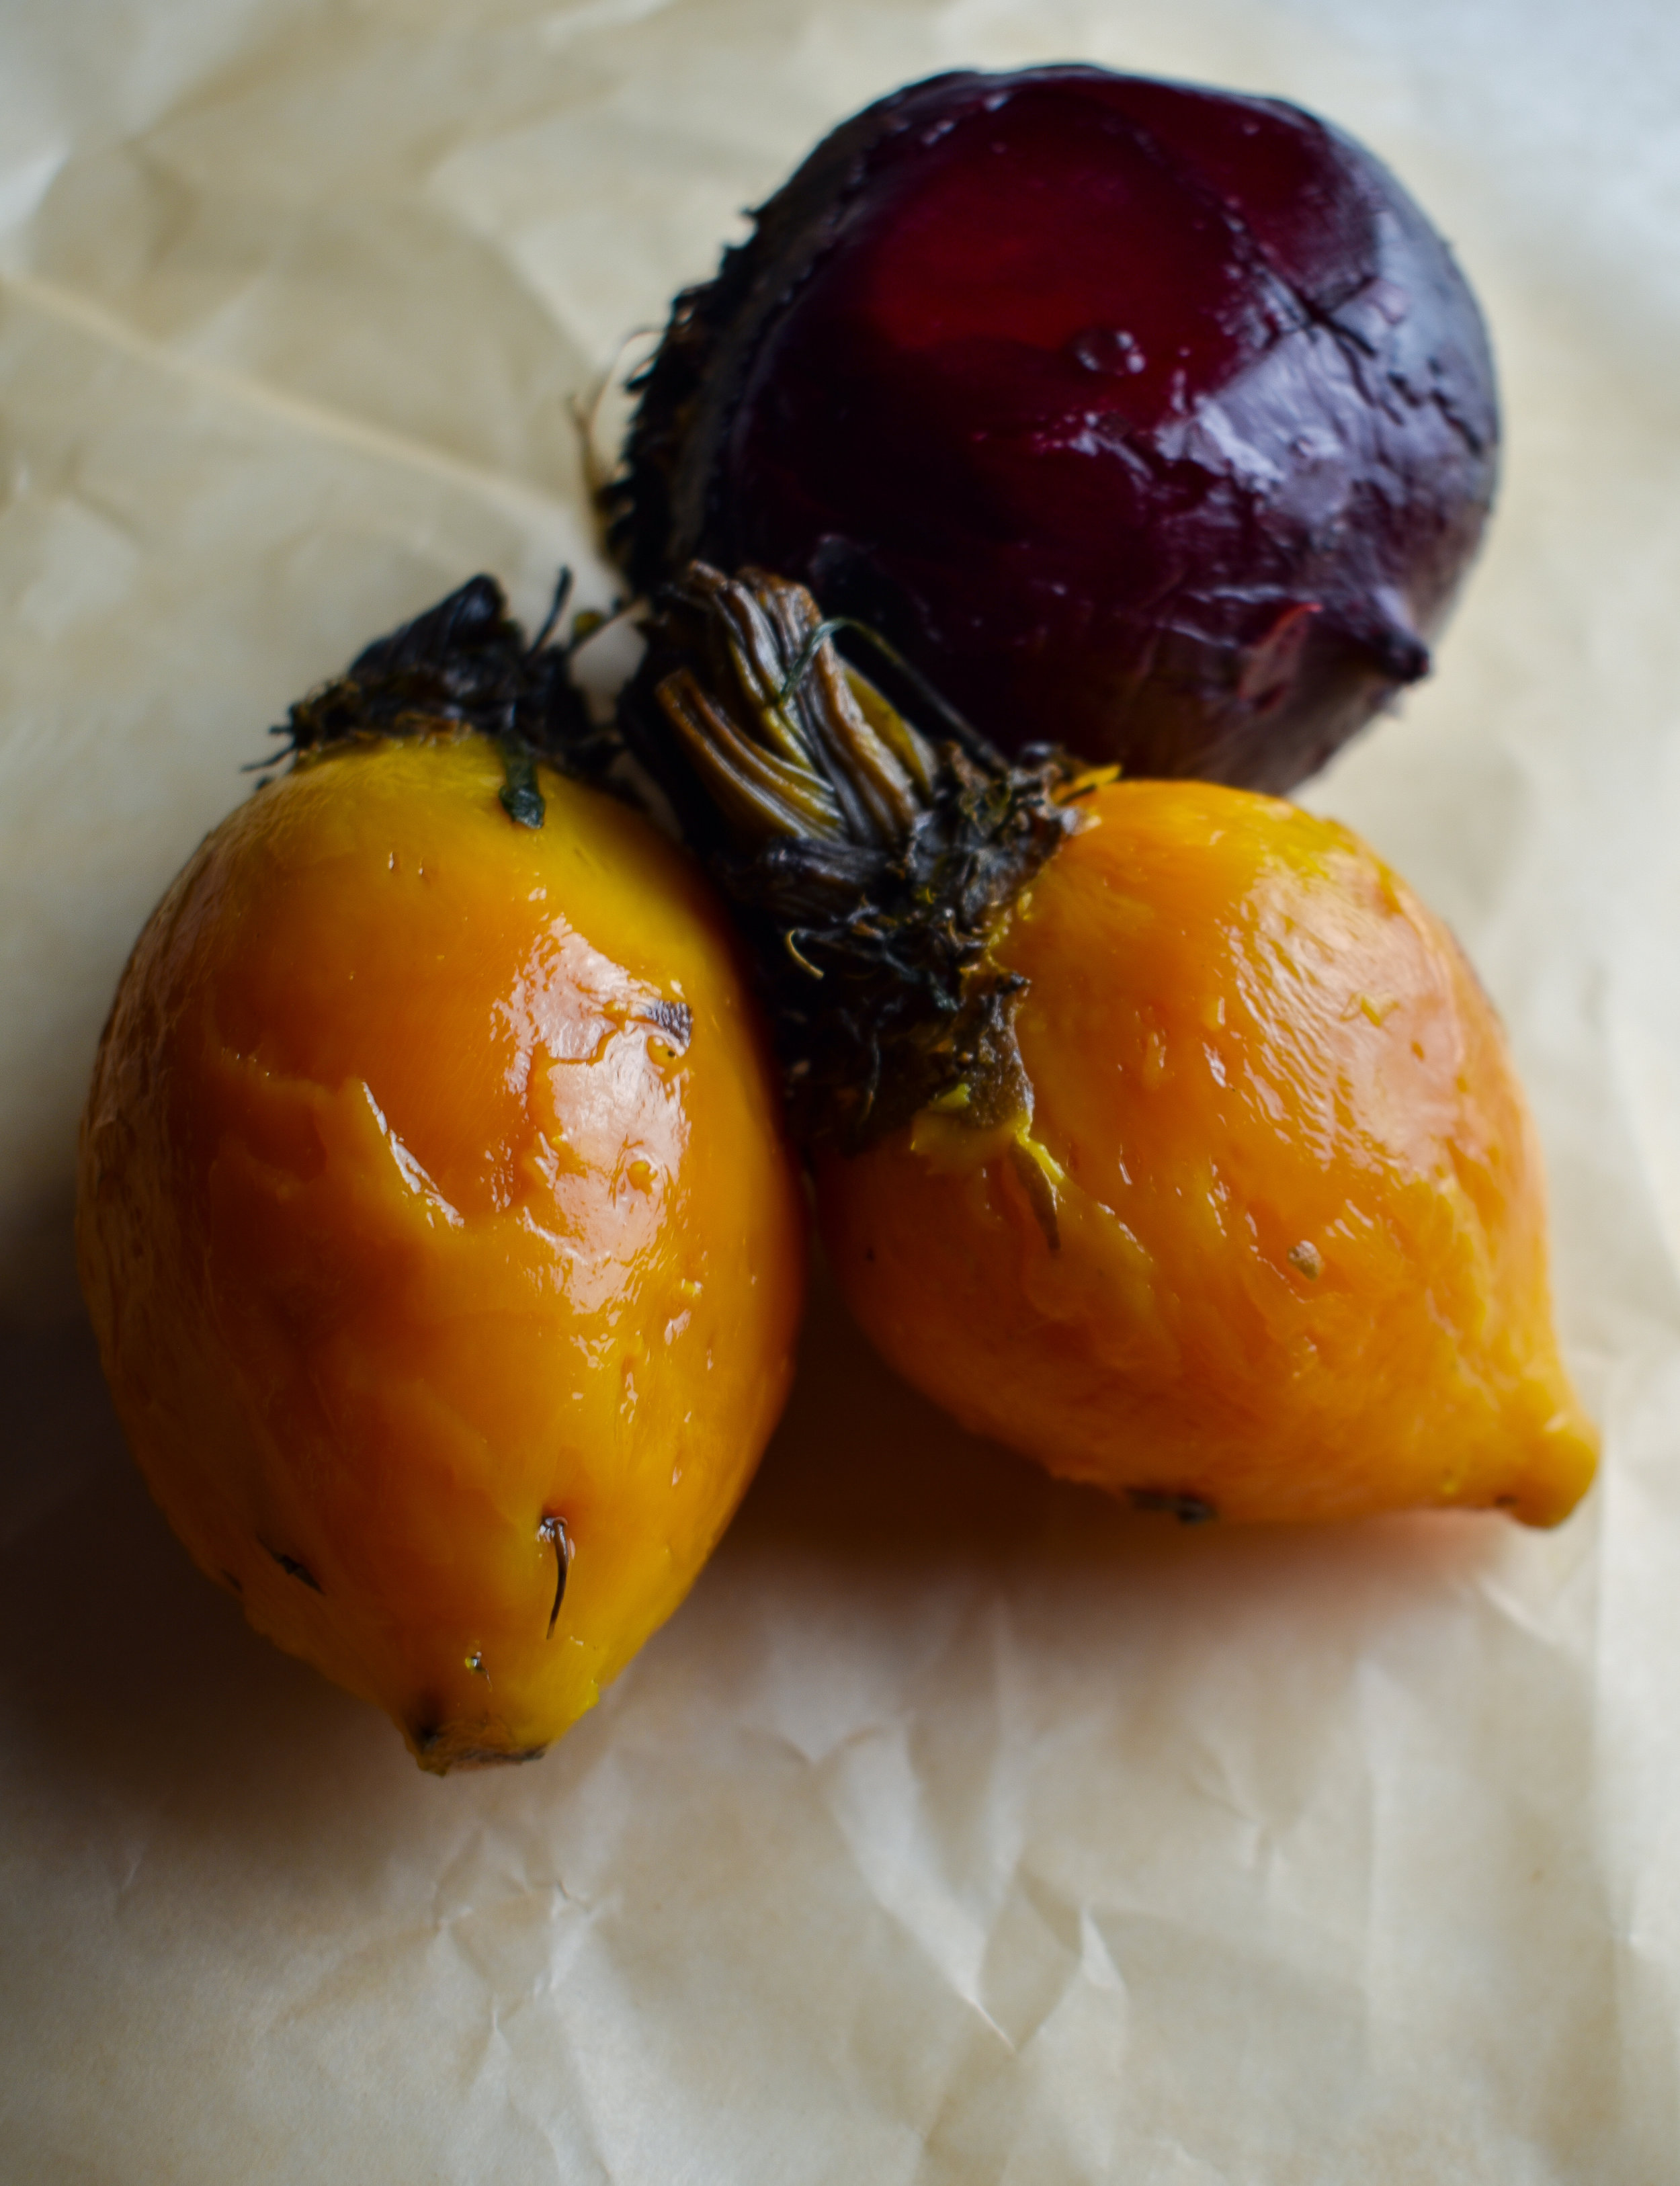 1. Wash beets, wrap in aluminum foil, bake at 425F for 60 minutes. Once its done baking, remove from oven and let cool for 5-10 minutes. Use a paper towel to peel off skin or peel with a peeler. Slice.